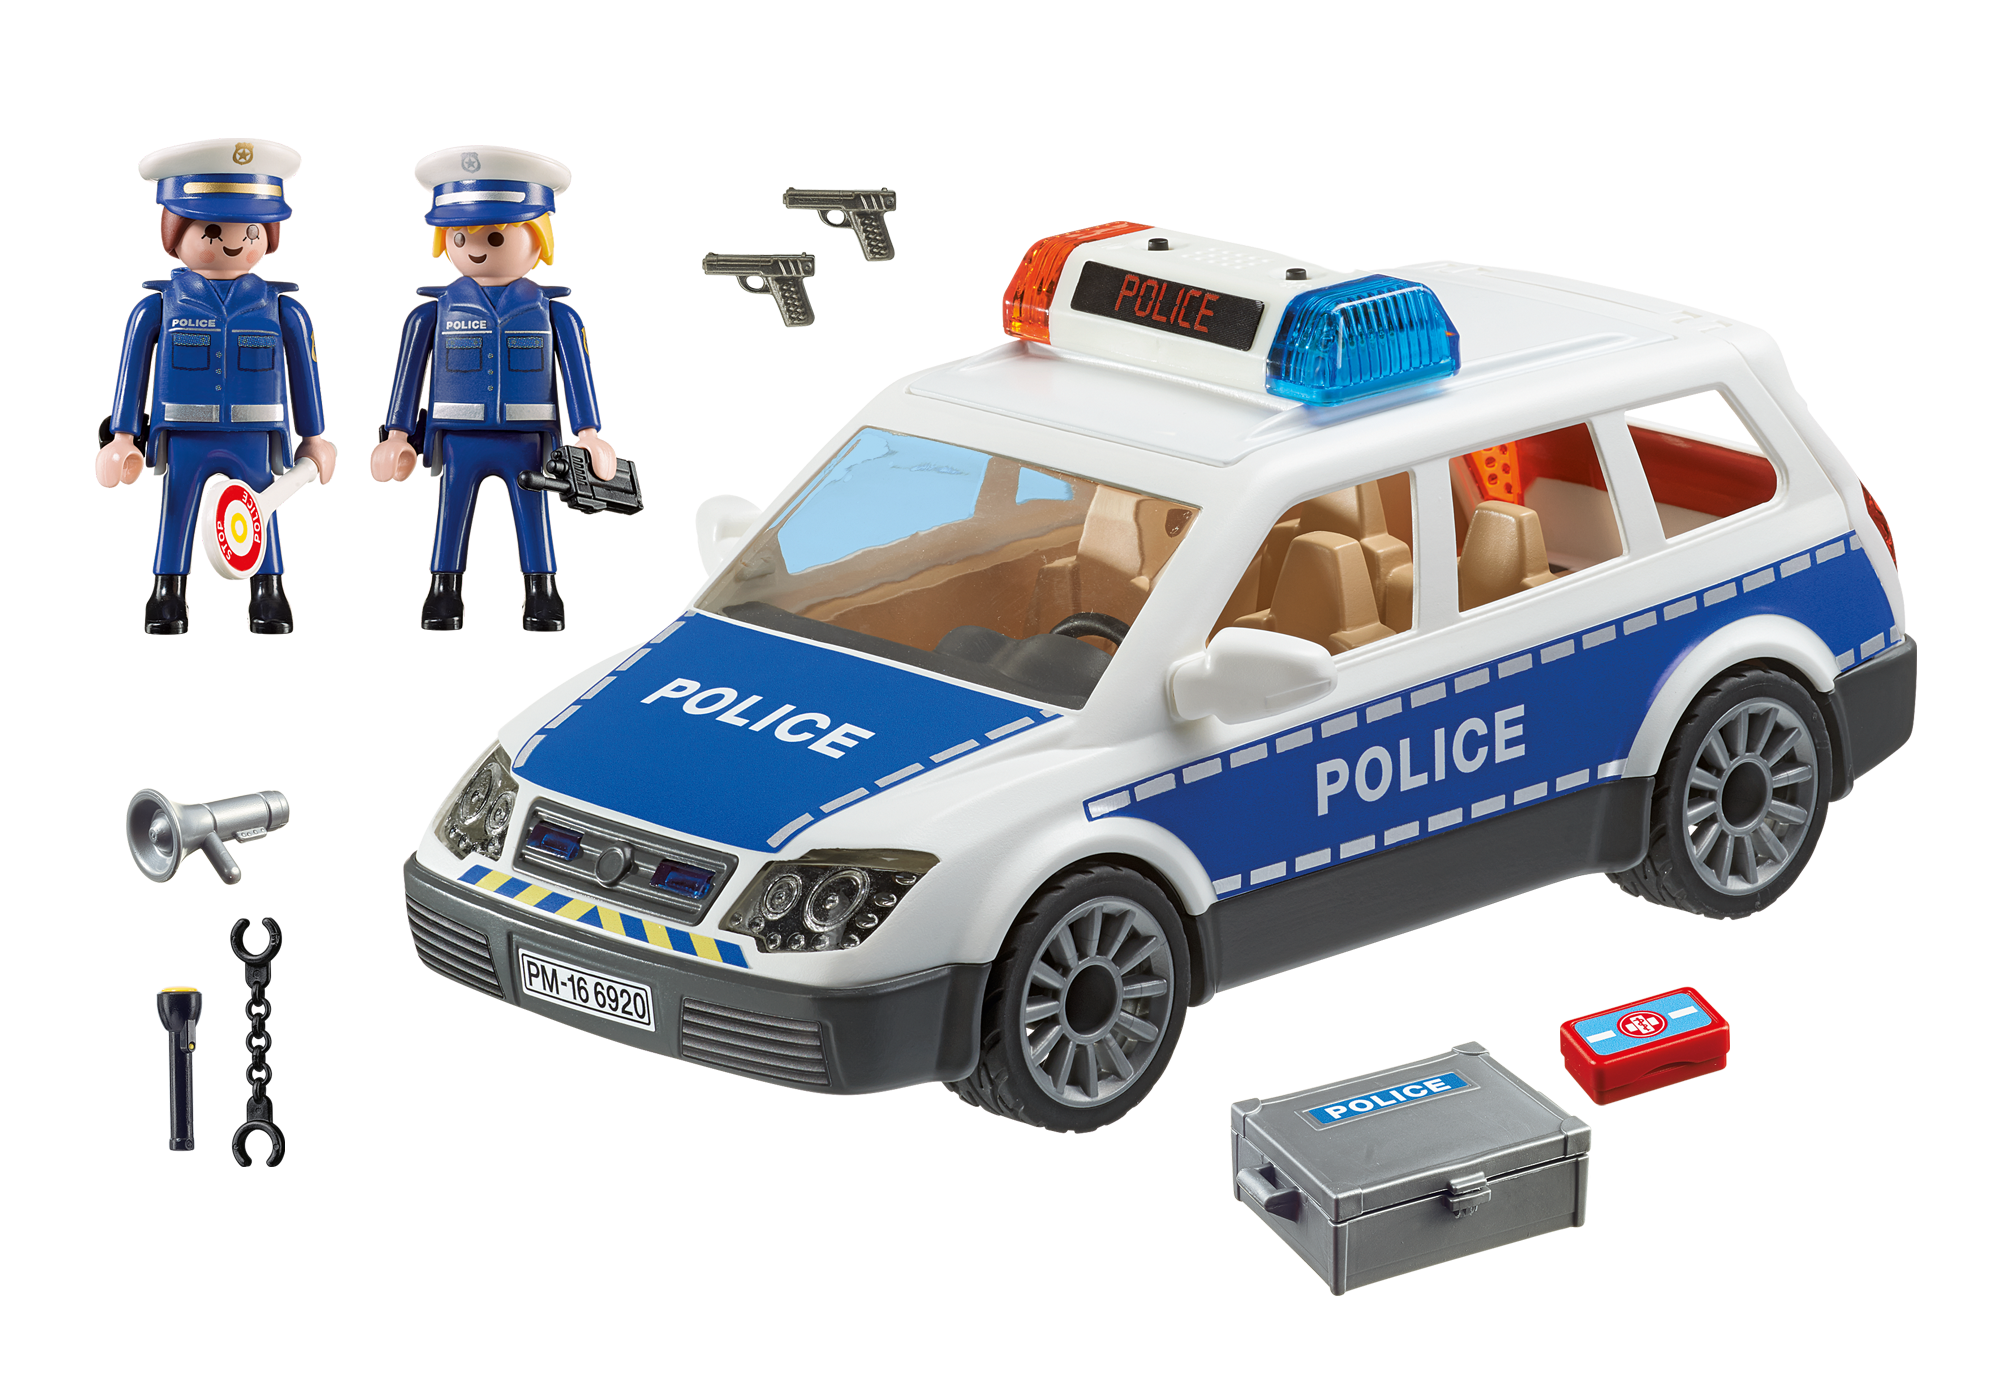 http://media.playmobil.com/i/playmobil/6920_product_box_back